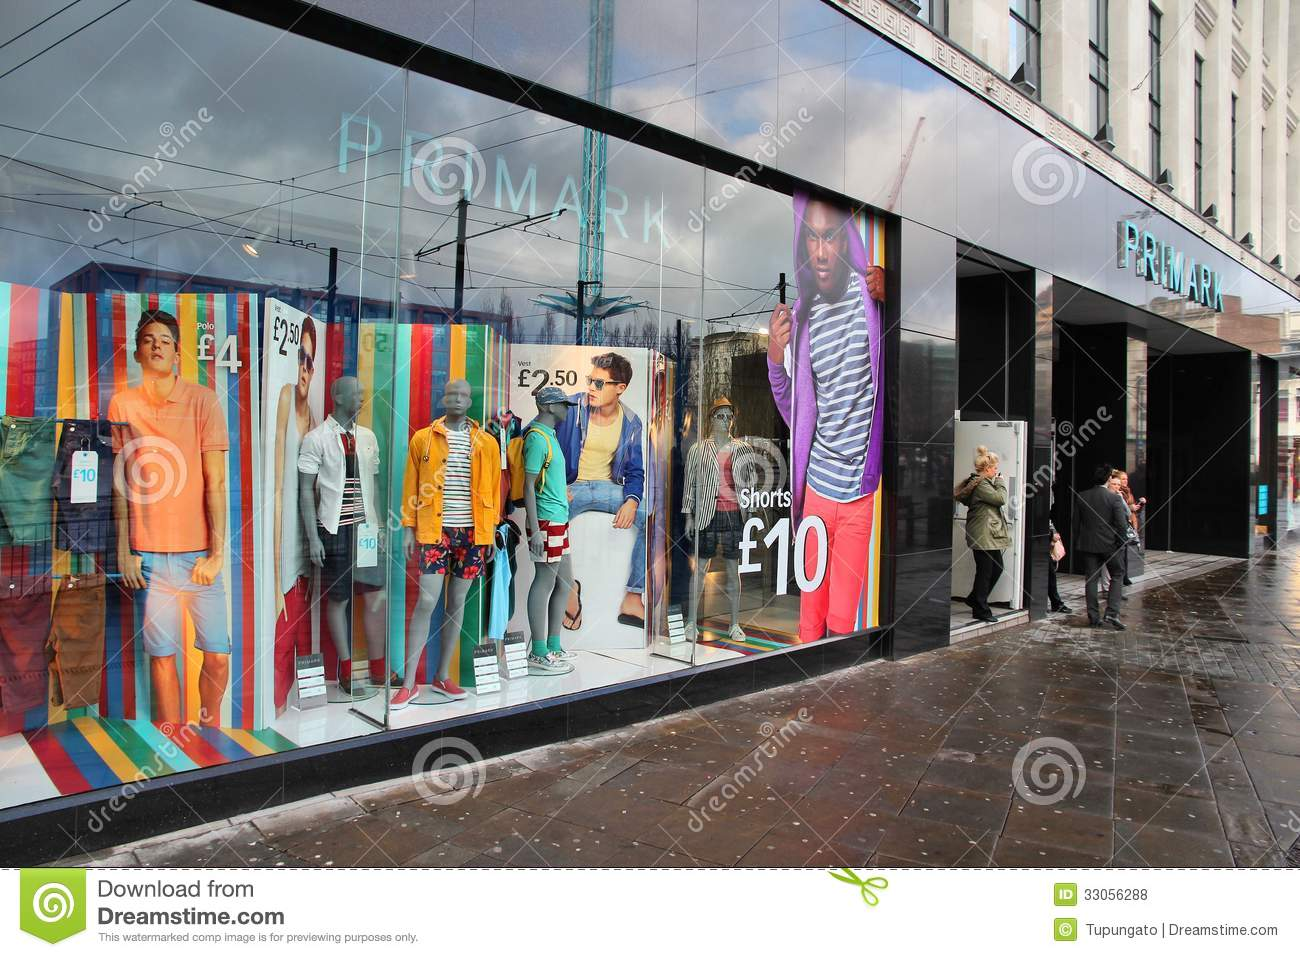 Apply to Retail Clothing Store jobs now hiring in Manchester on nazhatie-skachat.gq, the world's largest job site.